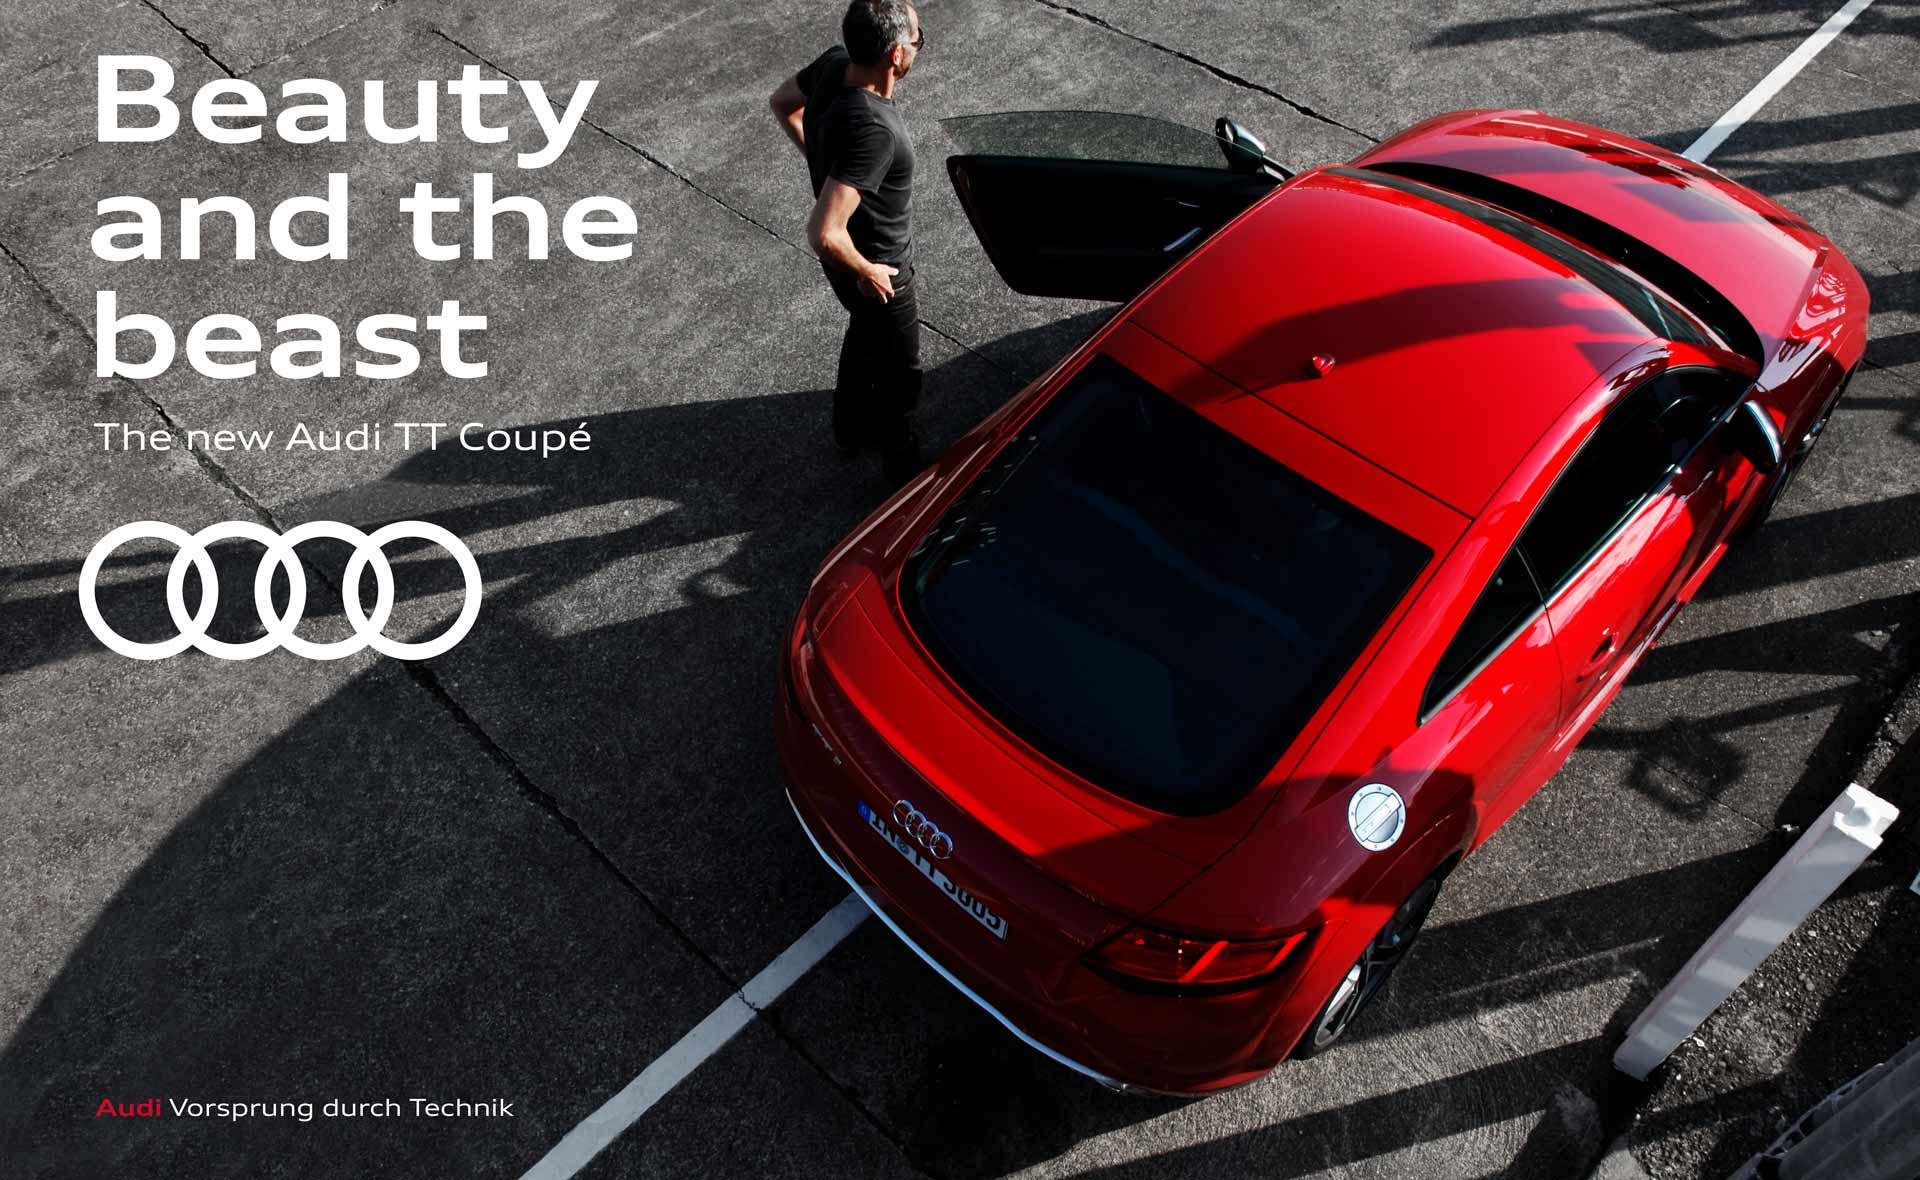 The picture shows an advertisement for the new Audi TT Coupé. A man stands next to a red model. It says: Beauty and the beast. The new Audi TT Coupé.